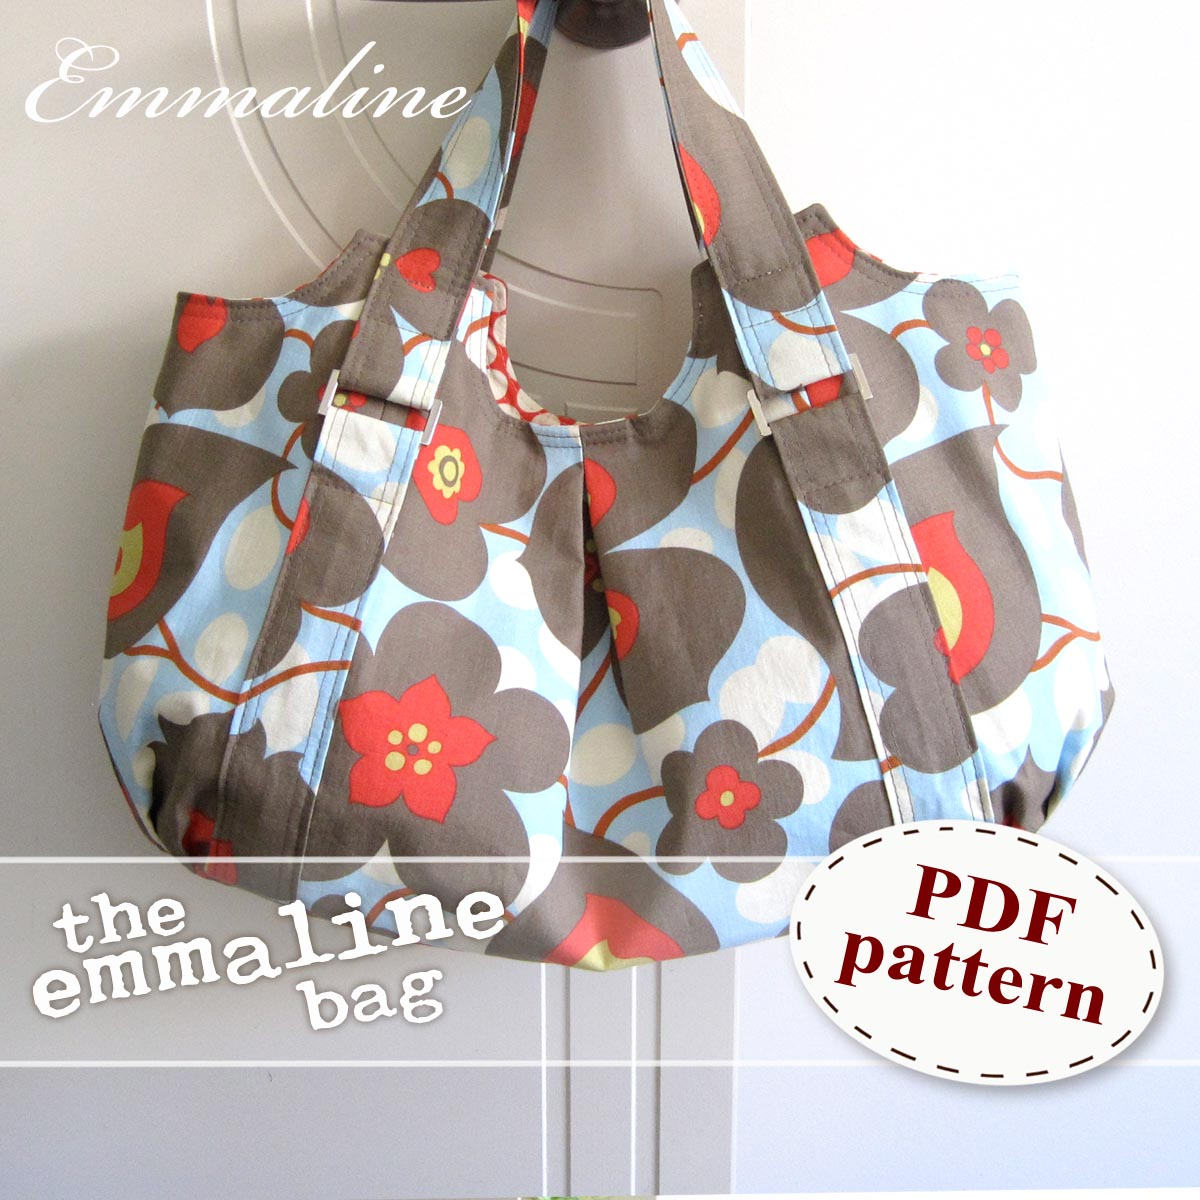 Bags And Purses Patterns : Emmaline Bags: Sewing Patterns and Purse Supplies: The Emmaline Bag ...